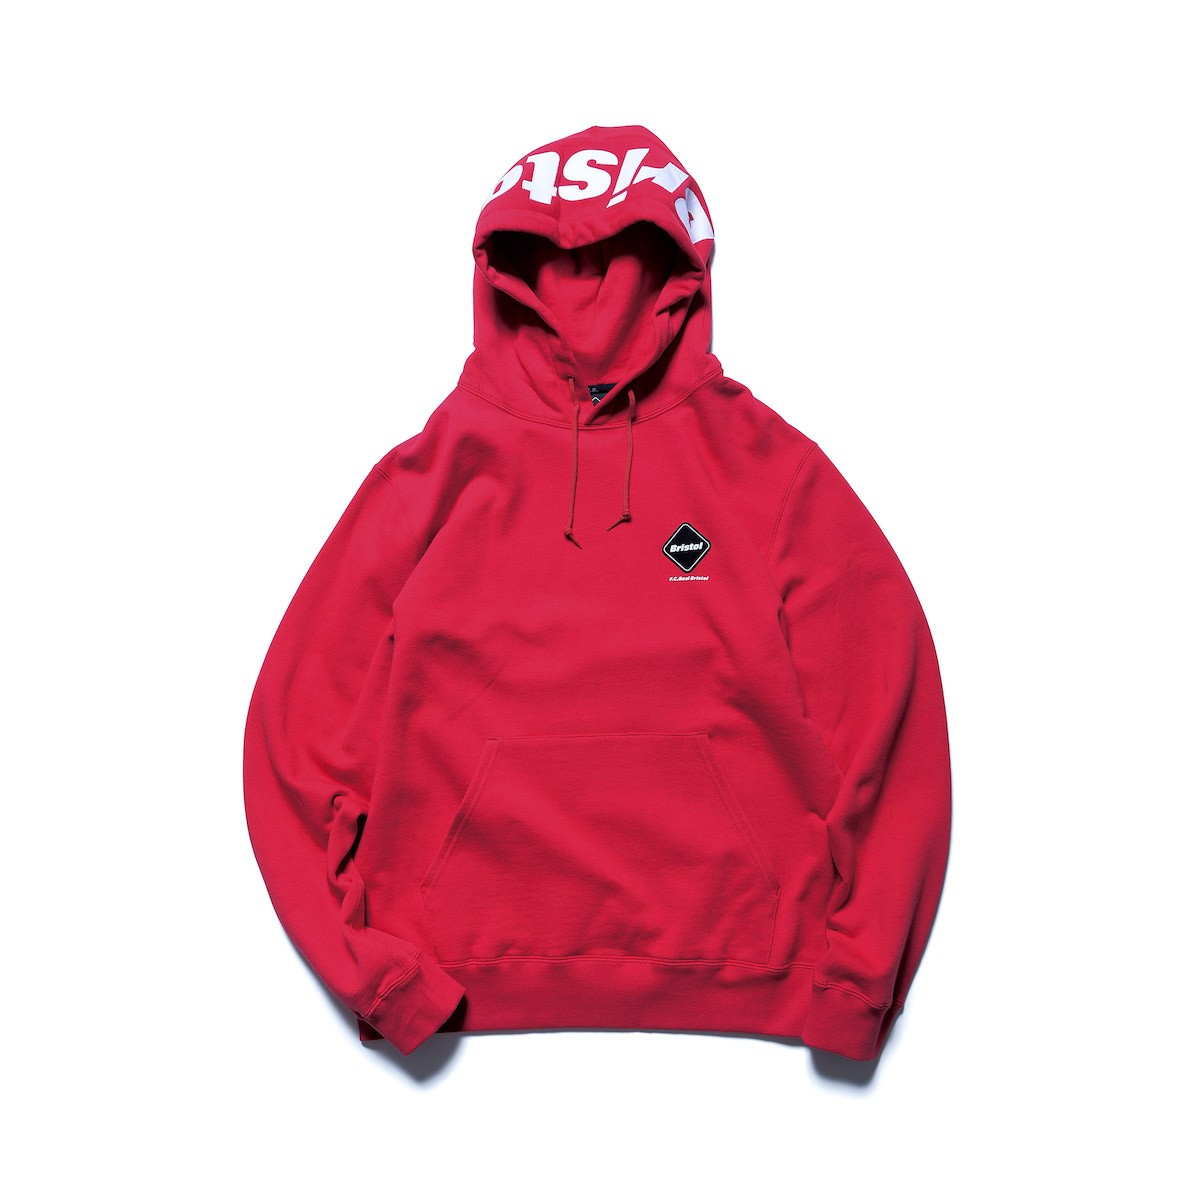 F.C.Real Bristol / LOGO PULLOVER SWEAT HOODIE (Red)